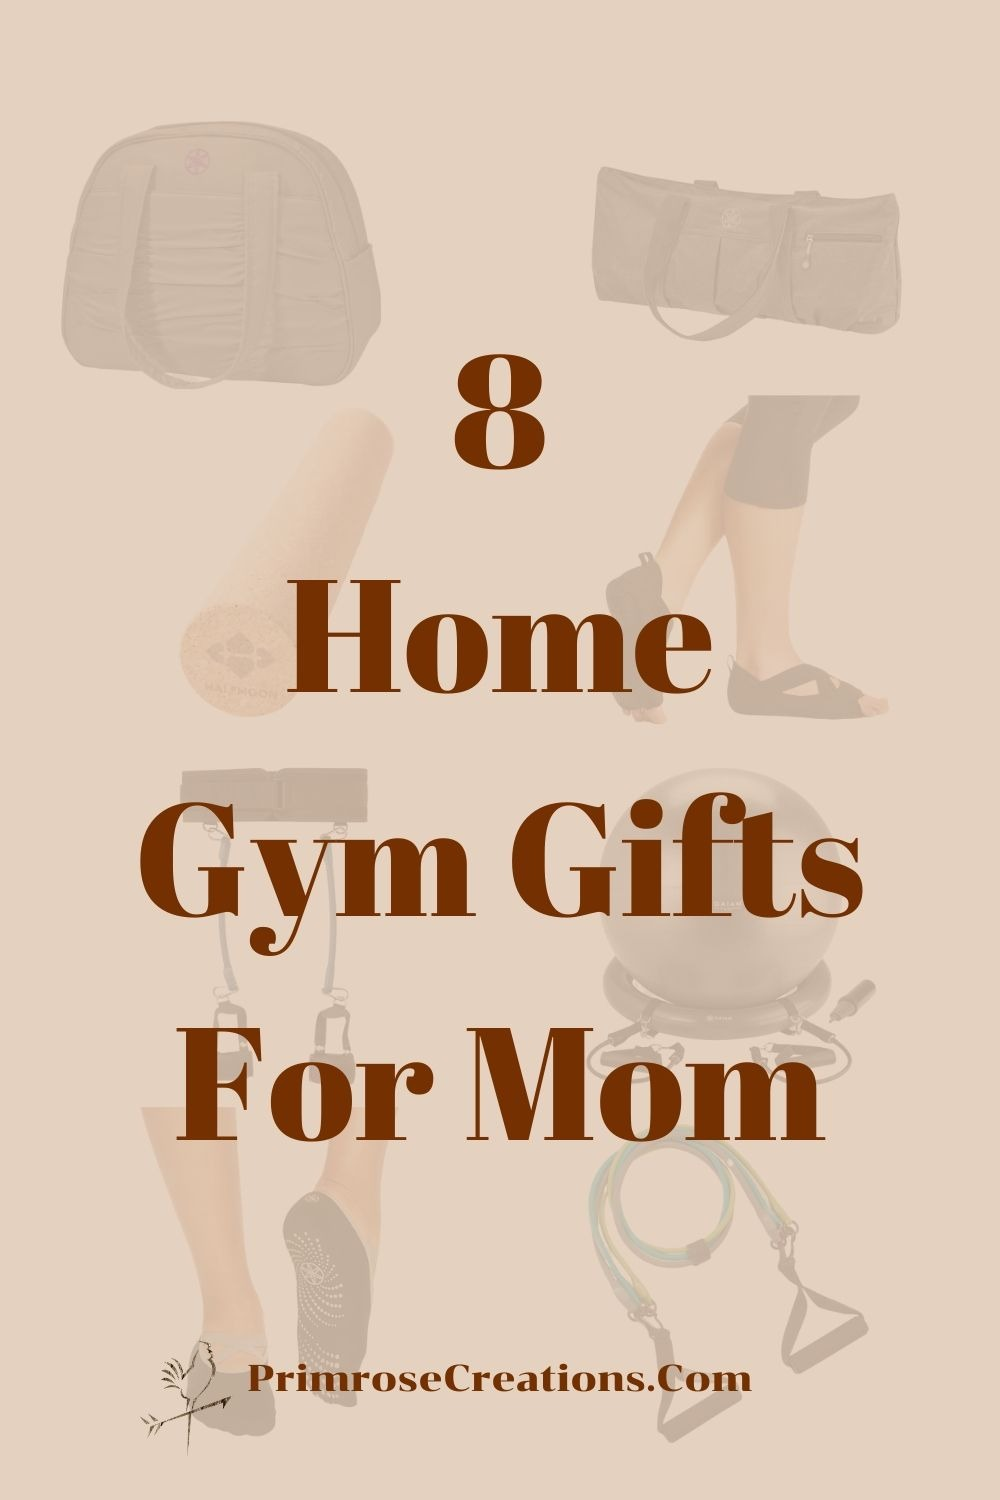 Giving gifts doesn't have to be limited to Mother's Day. From the great outdoors to the silence of self-care, we've got the ultimate list of them all! Here are our Top 8 Home Gym Gifts for mom this spring.